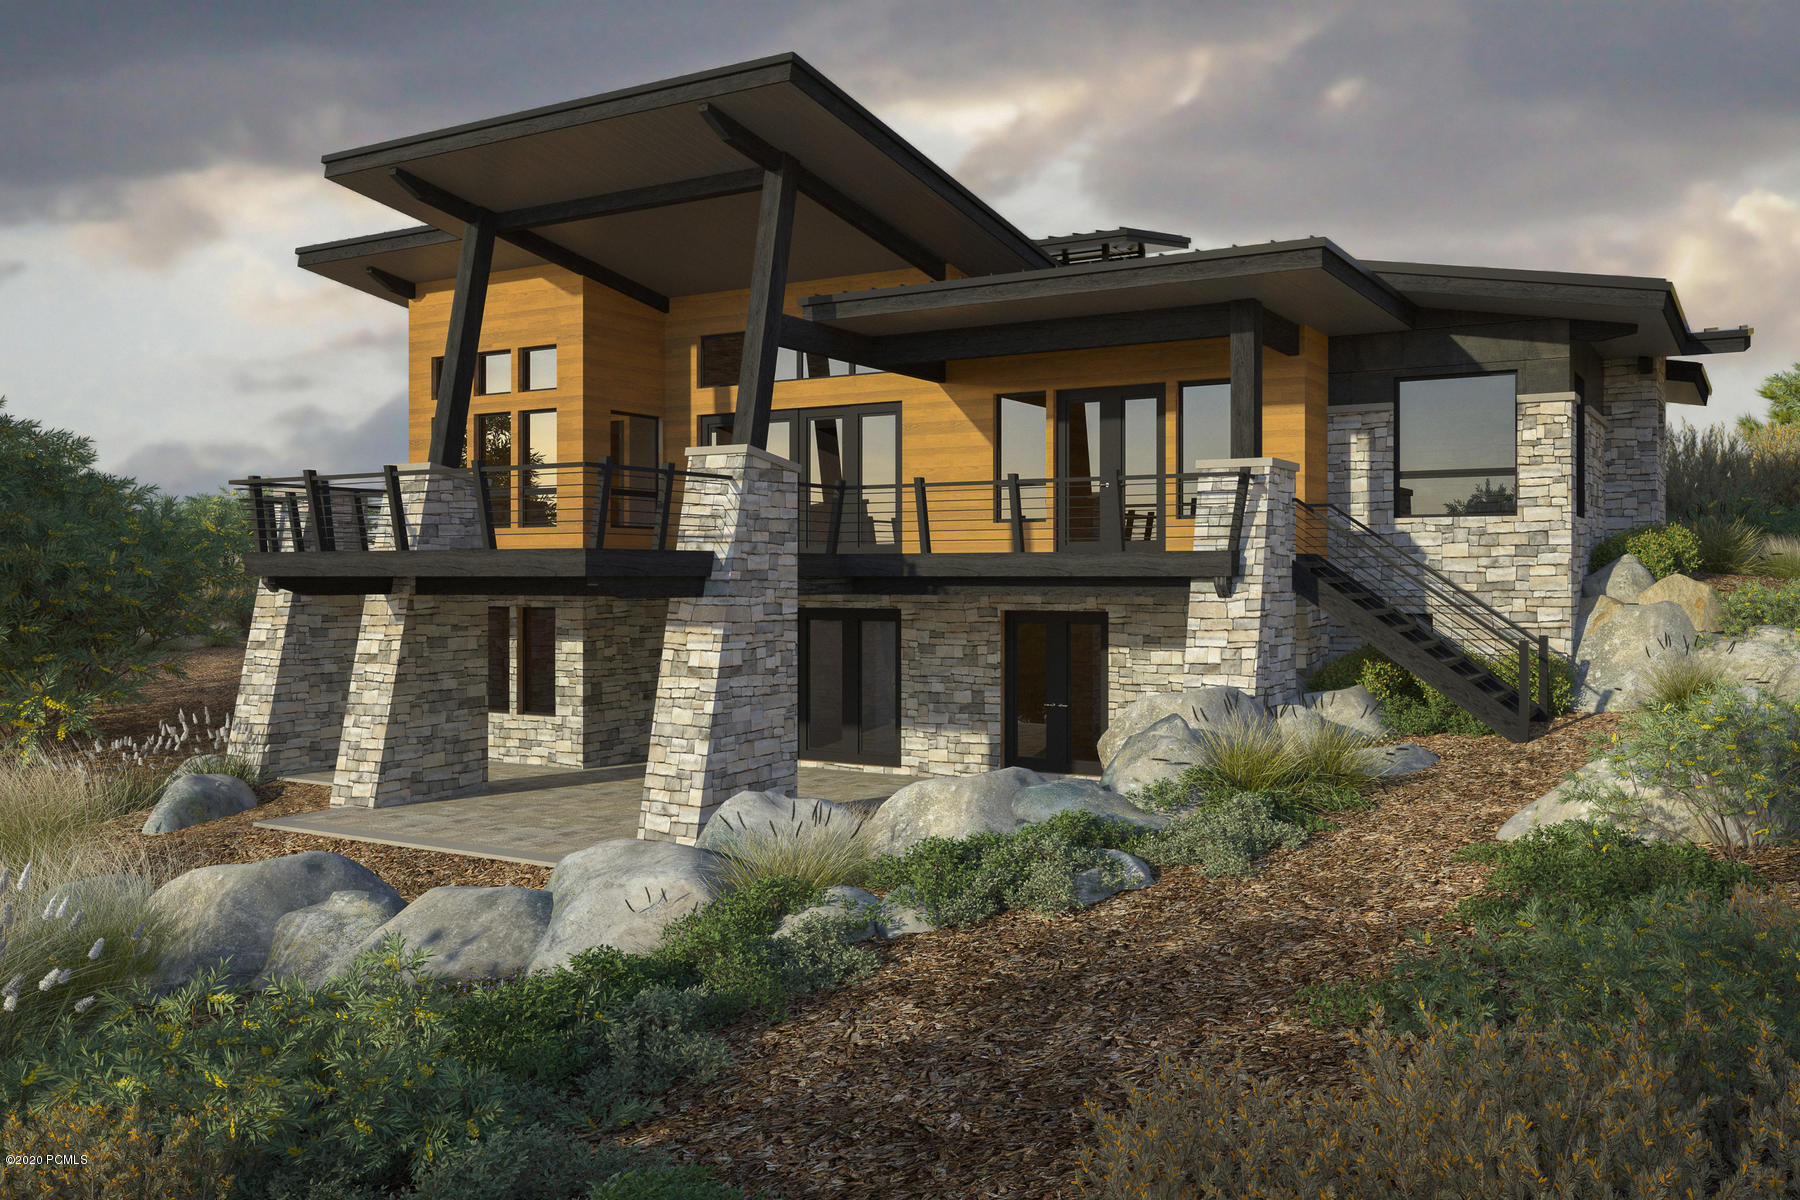 1133 Canyon Gate Road, Park City, Utah 84098, 4 Bedrooms Bedrooms, ,5 BathroomsBathrooms,Single Family,For Sale,Canyon Gate,20190109112430415765000000